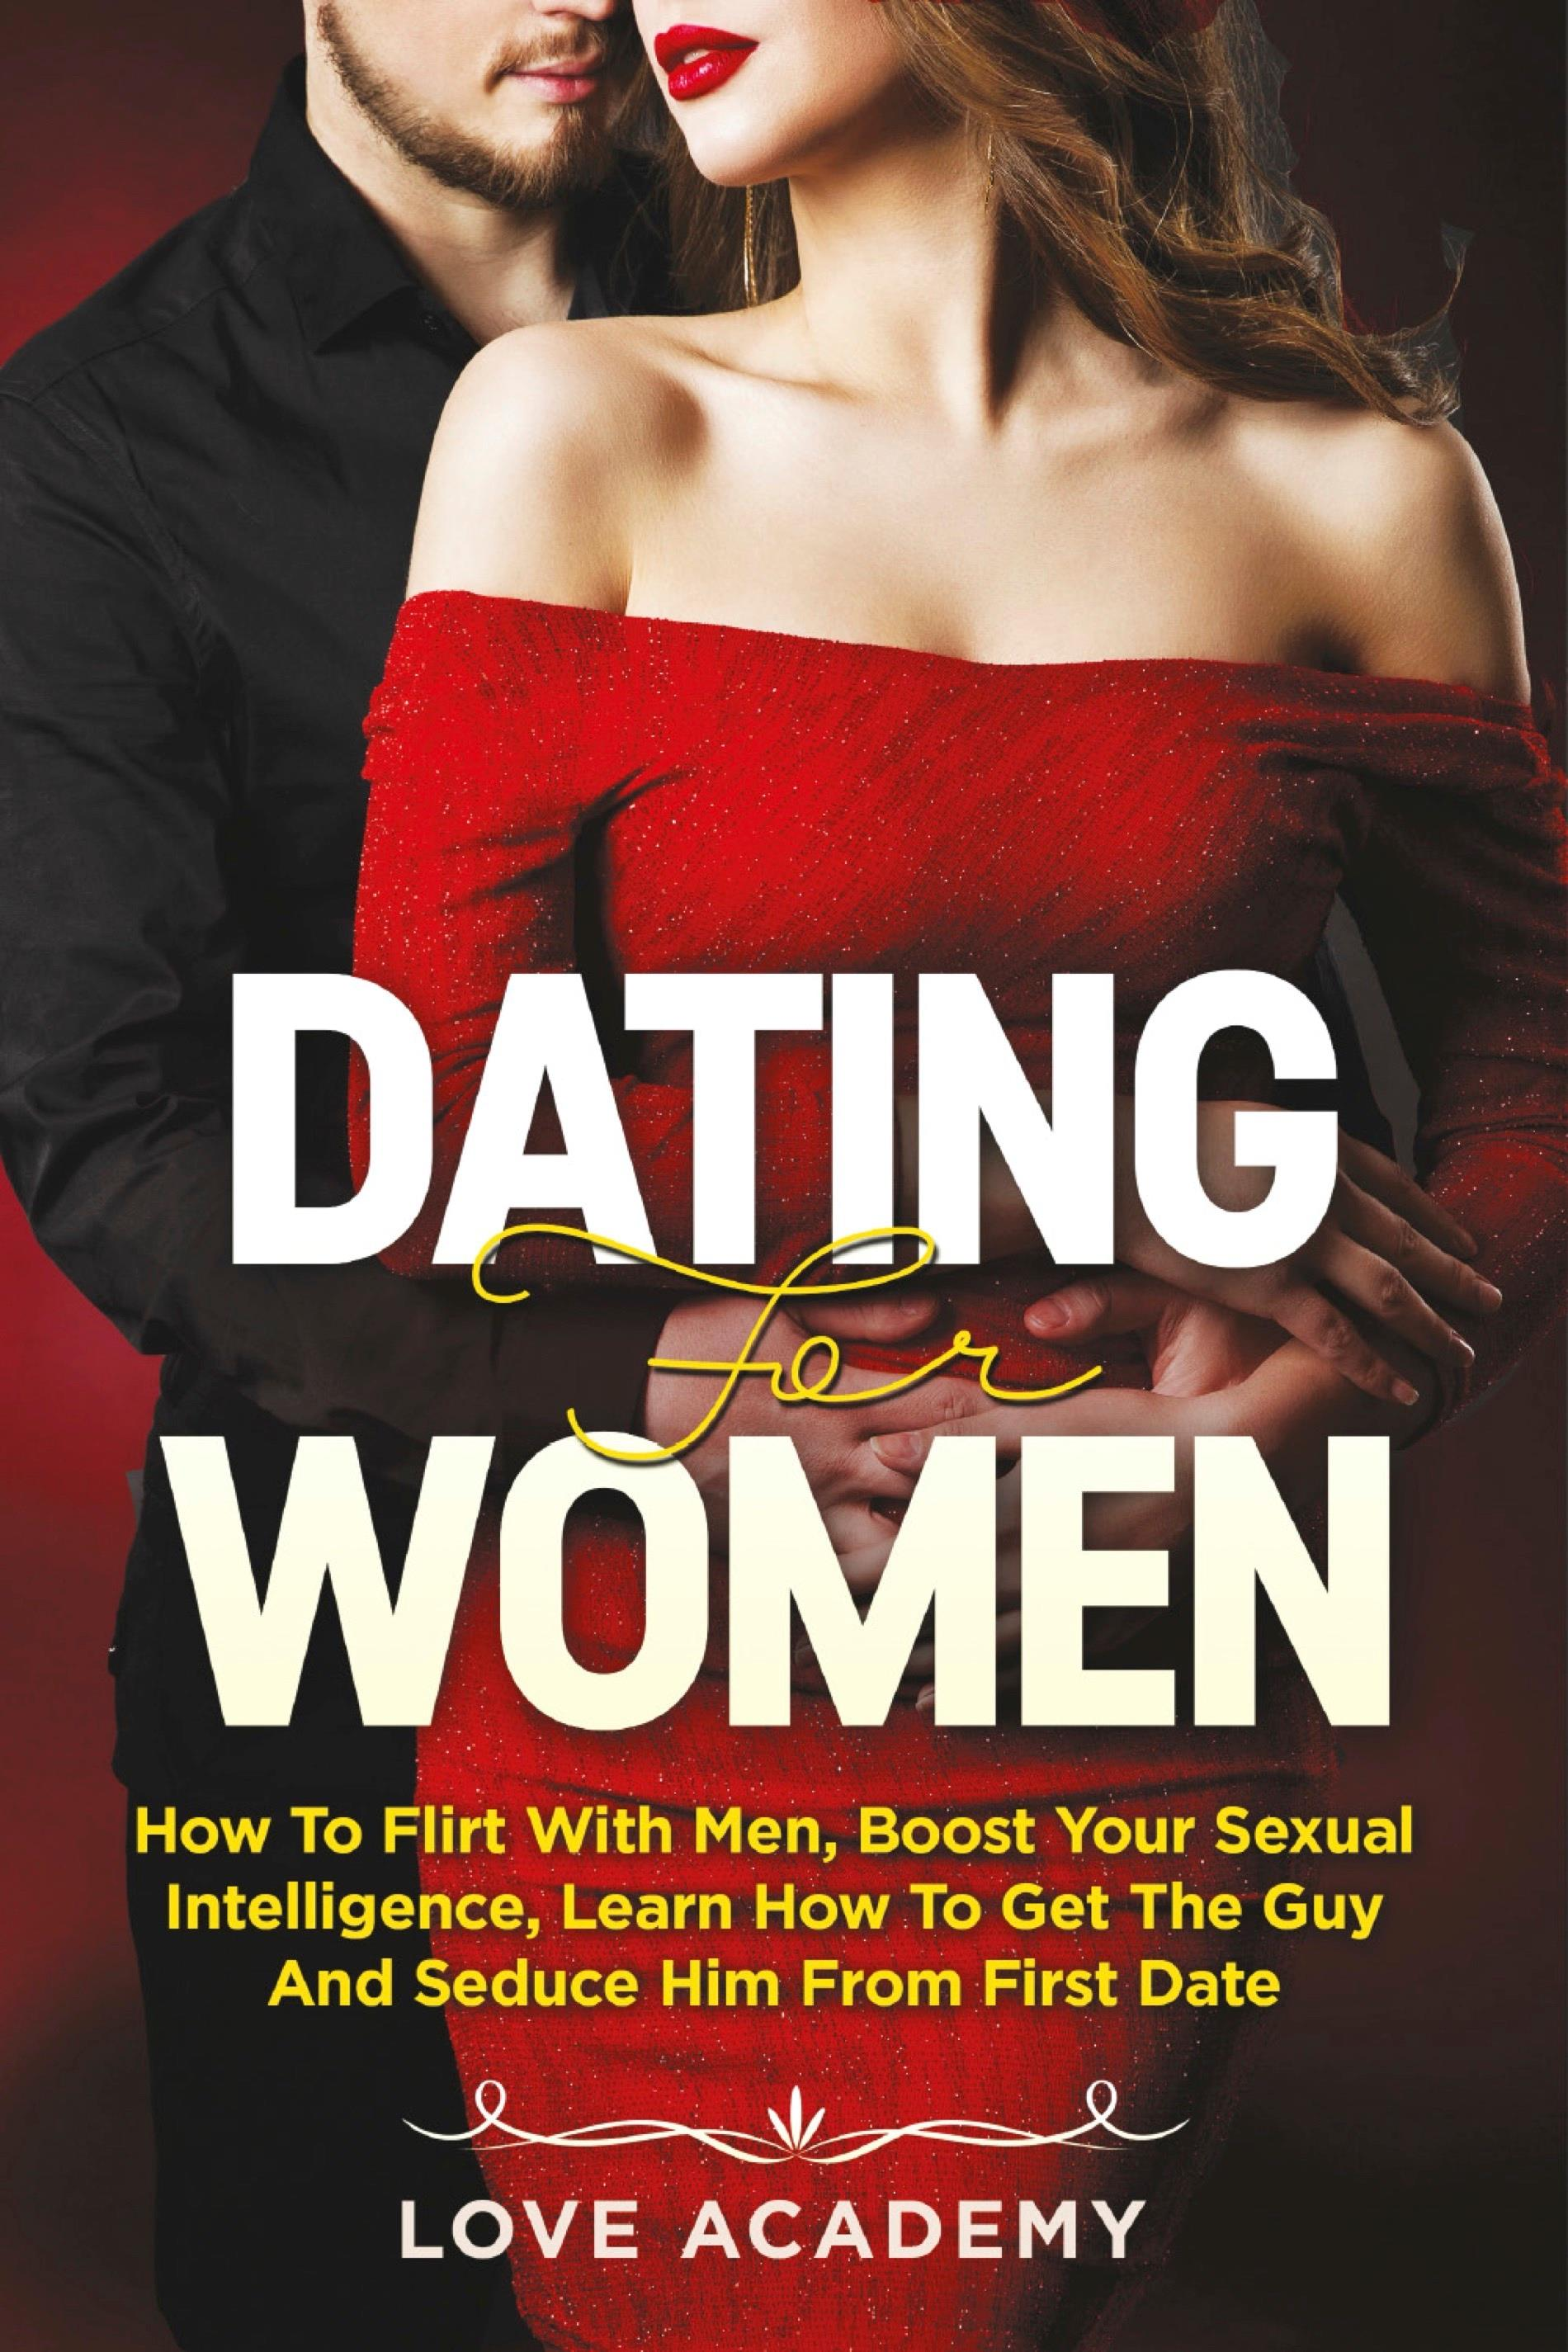 Dating for Women. How to Flirt with Men, Boost your Sexual Intelligence, Learn How to Get the Guy and Seduce Him from the First Date